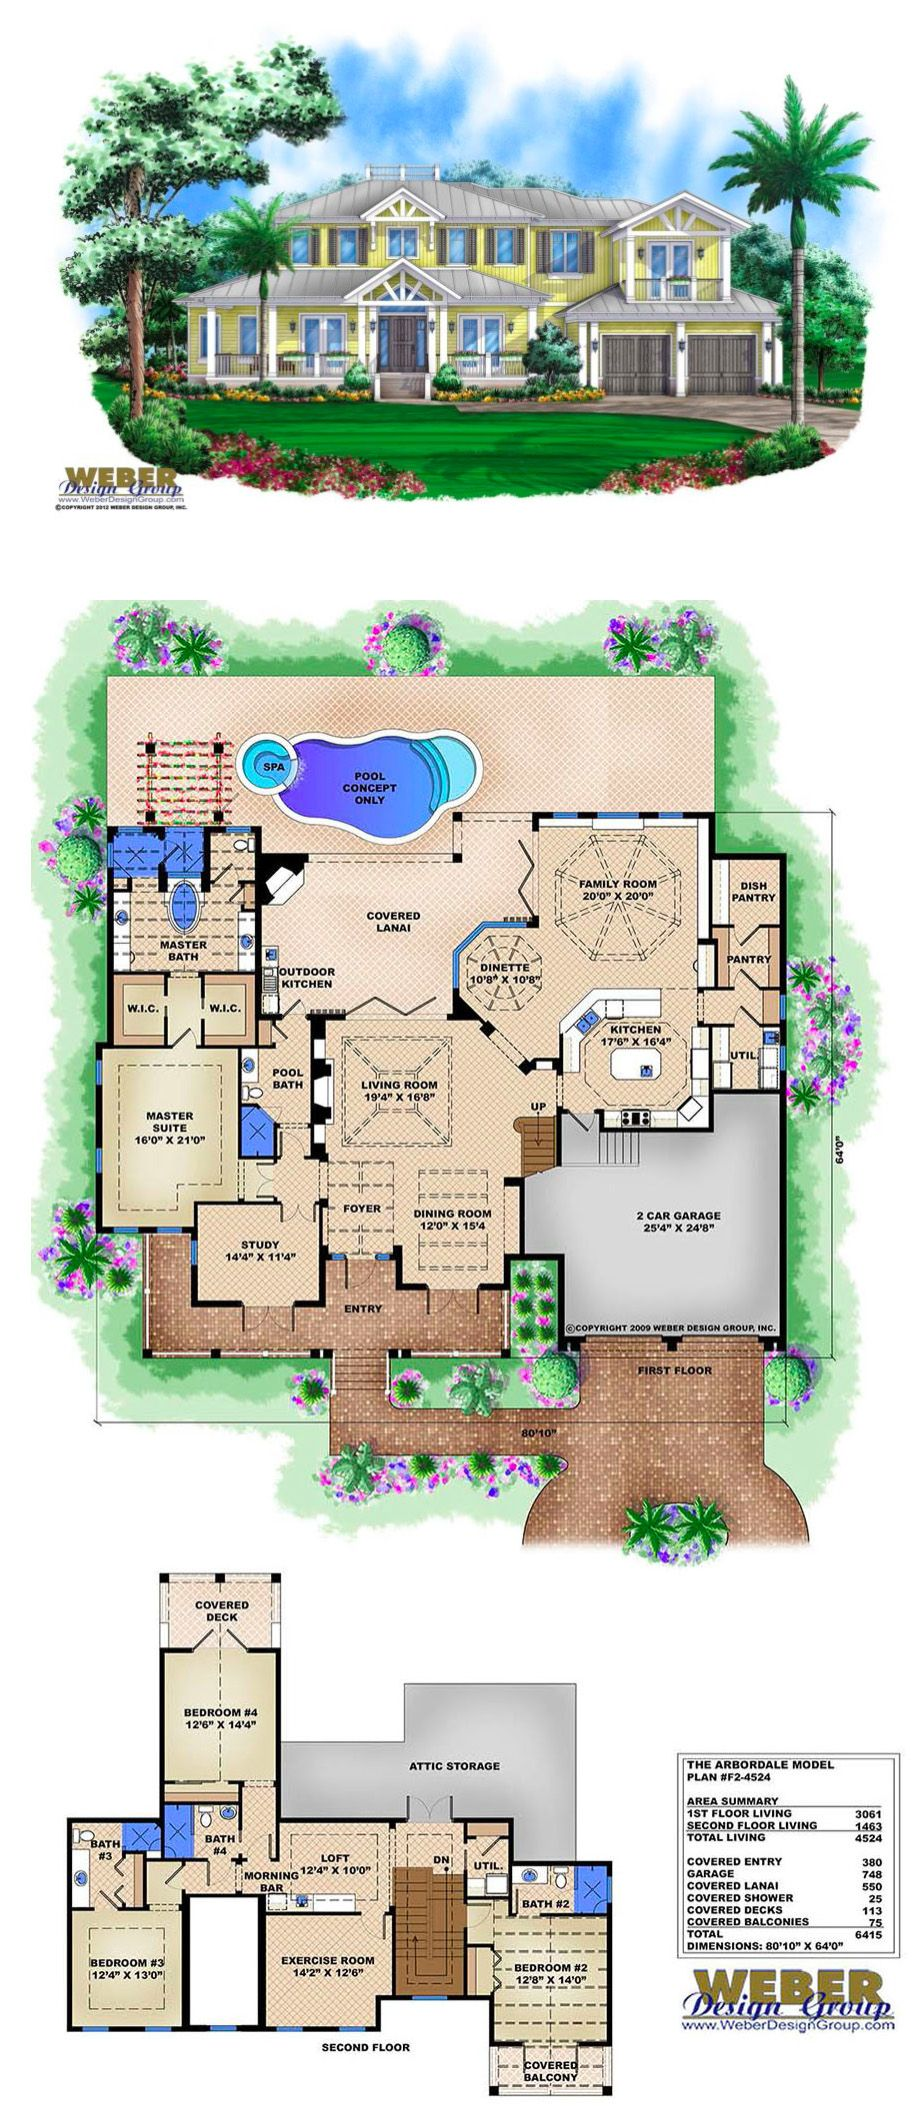 F2 4524   Arbordale   Two Story Waterfront House Plan. 4,524 Square Feet Of  Living Area. 4 Bedrooms, 5 Full Baths, 2 Car Garage.